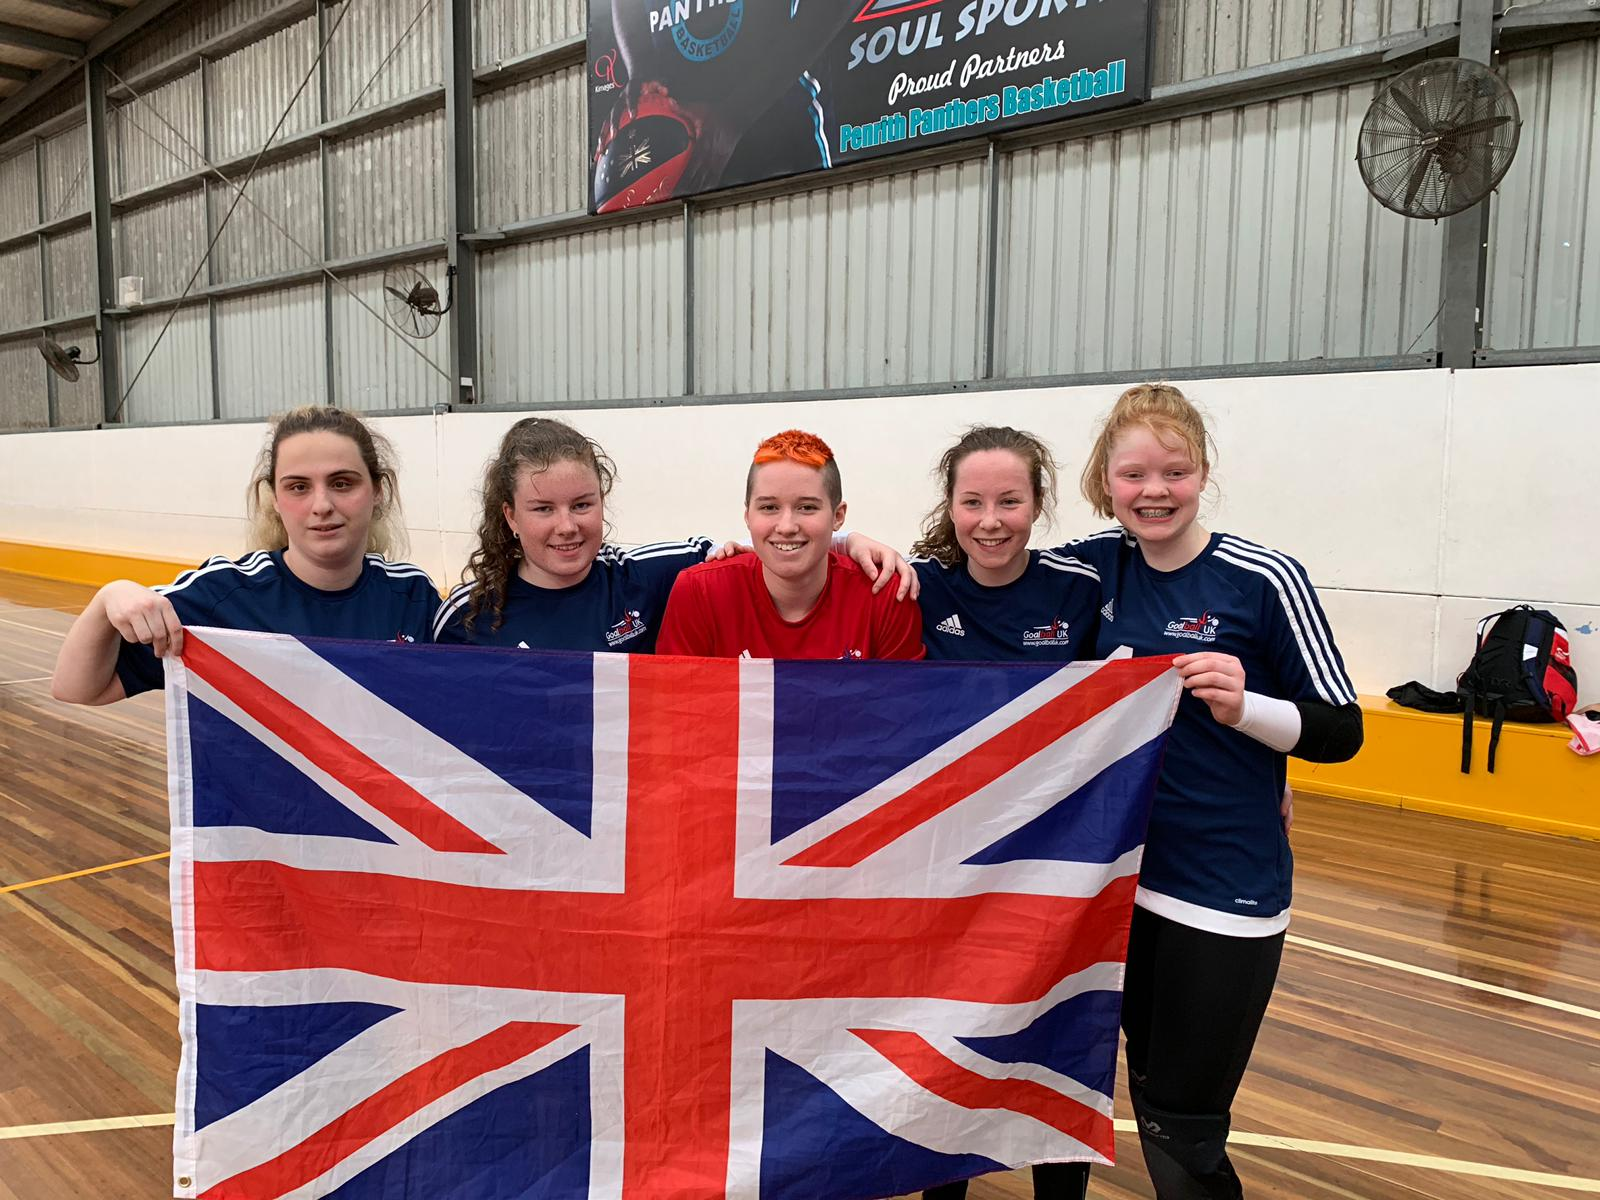 Image shows Nansi Stood with her GB under 19 teammates holding a union jack flag